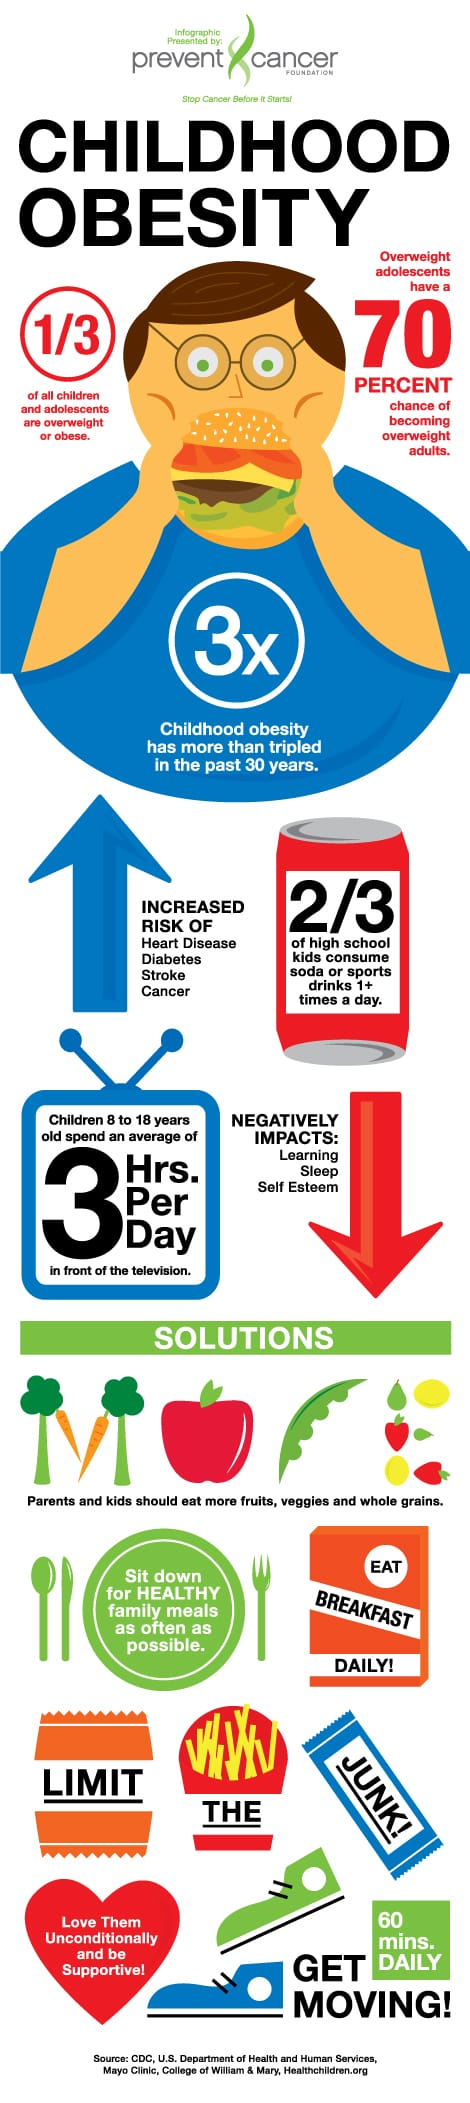 childhood obesity [infographic]